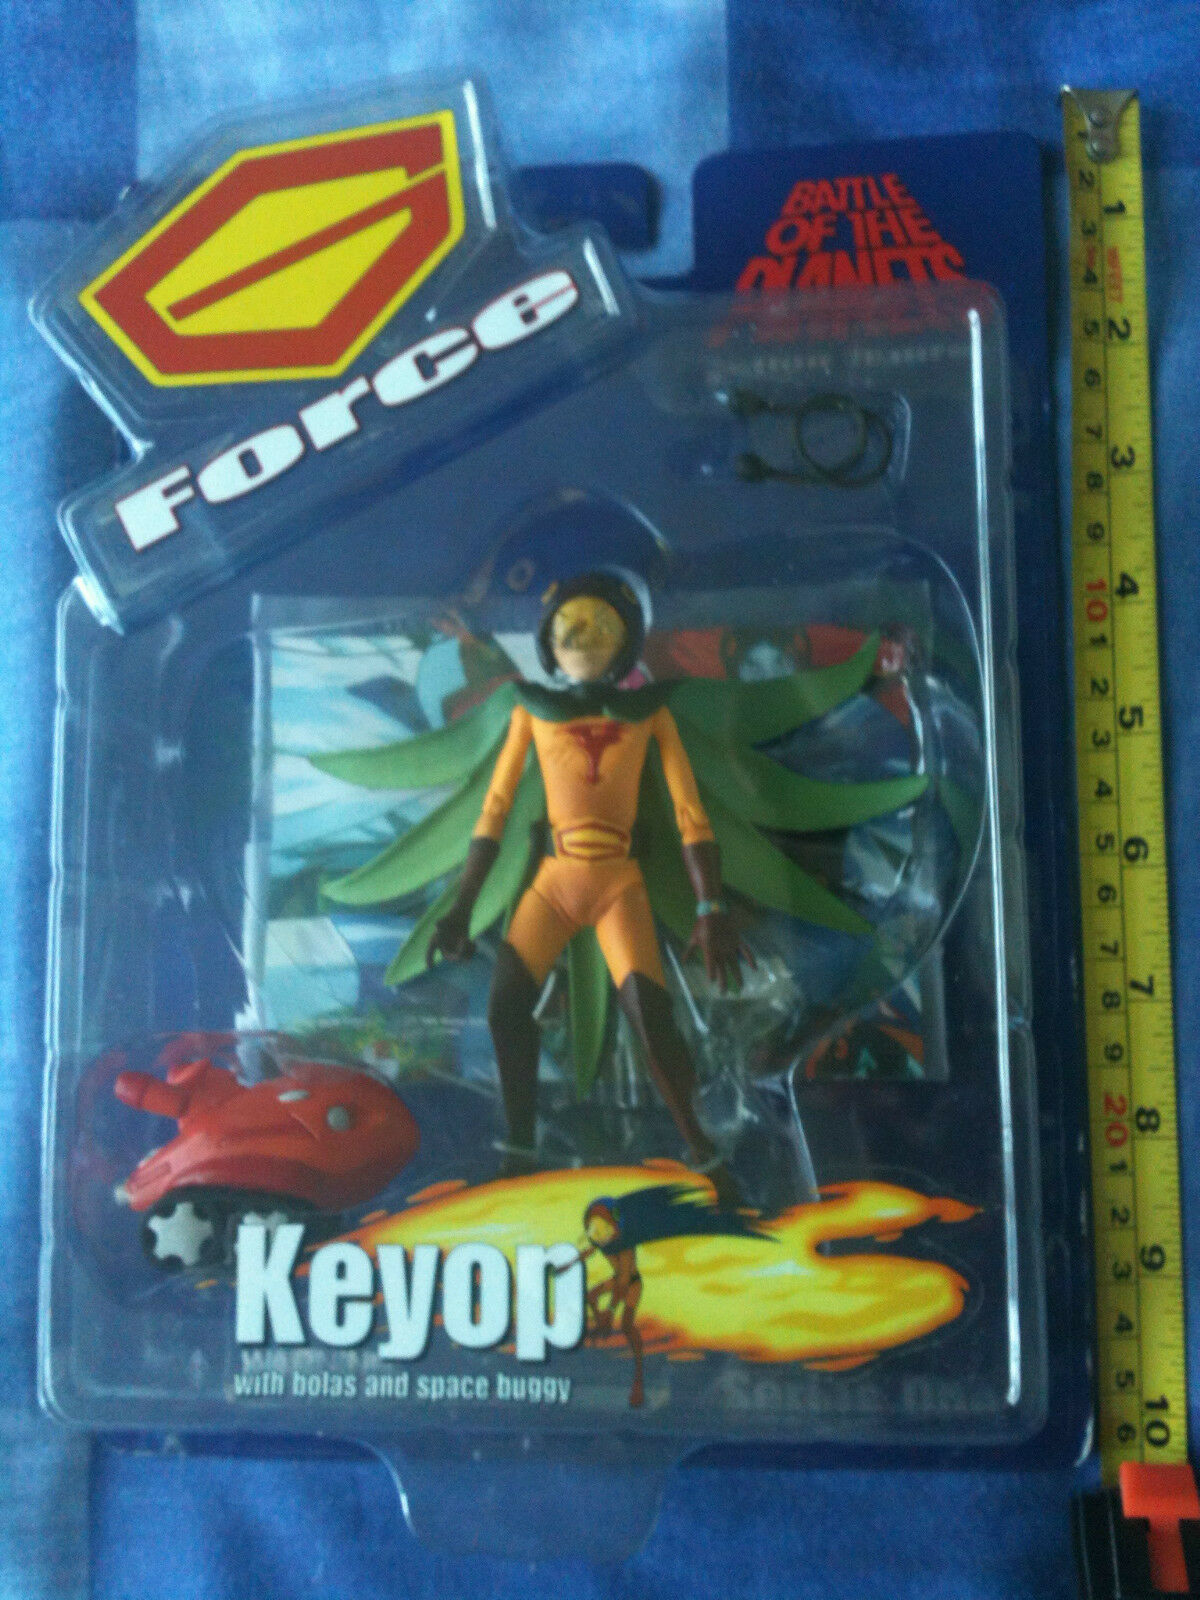 BATTLE OF THE PLANETS Action Figure - 'Keyop' (2002 Sealed) G-Force Gatchaman